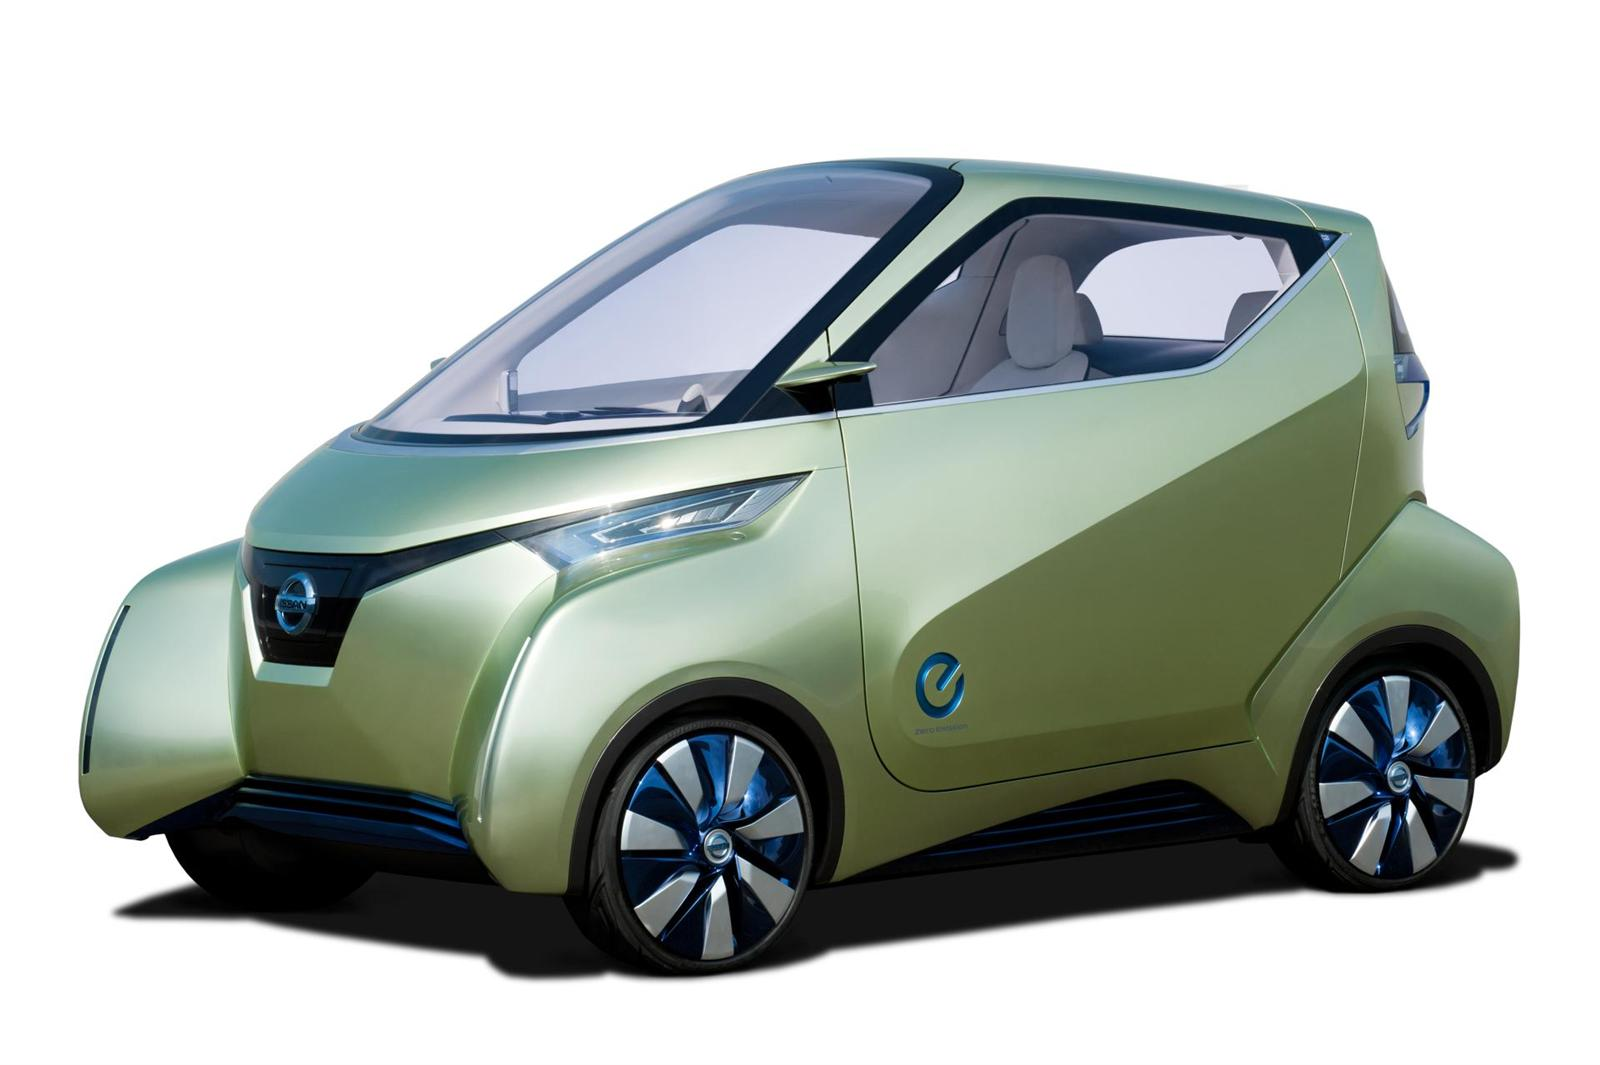 2012 Nissan Pivo 3 EV Concept 2012 Nissan Pivo 3 EV Concept  A Review